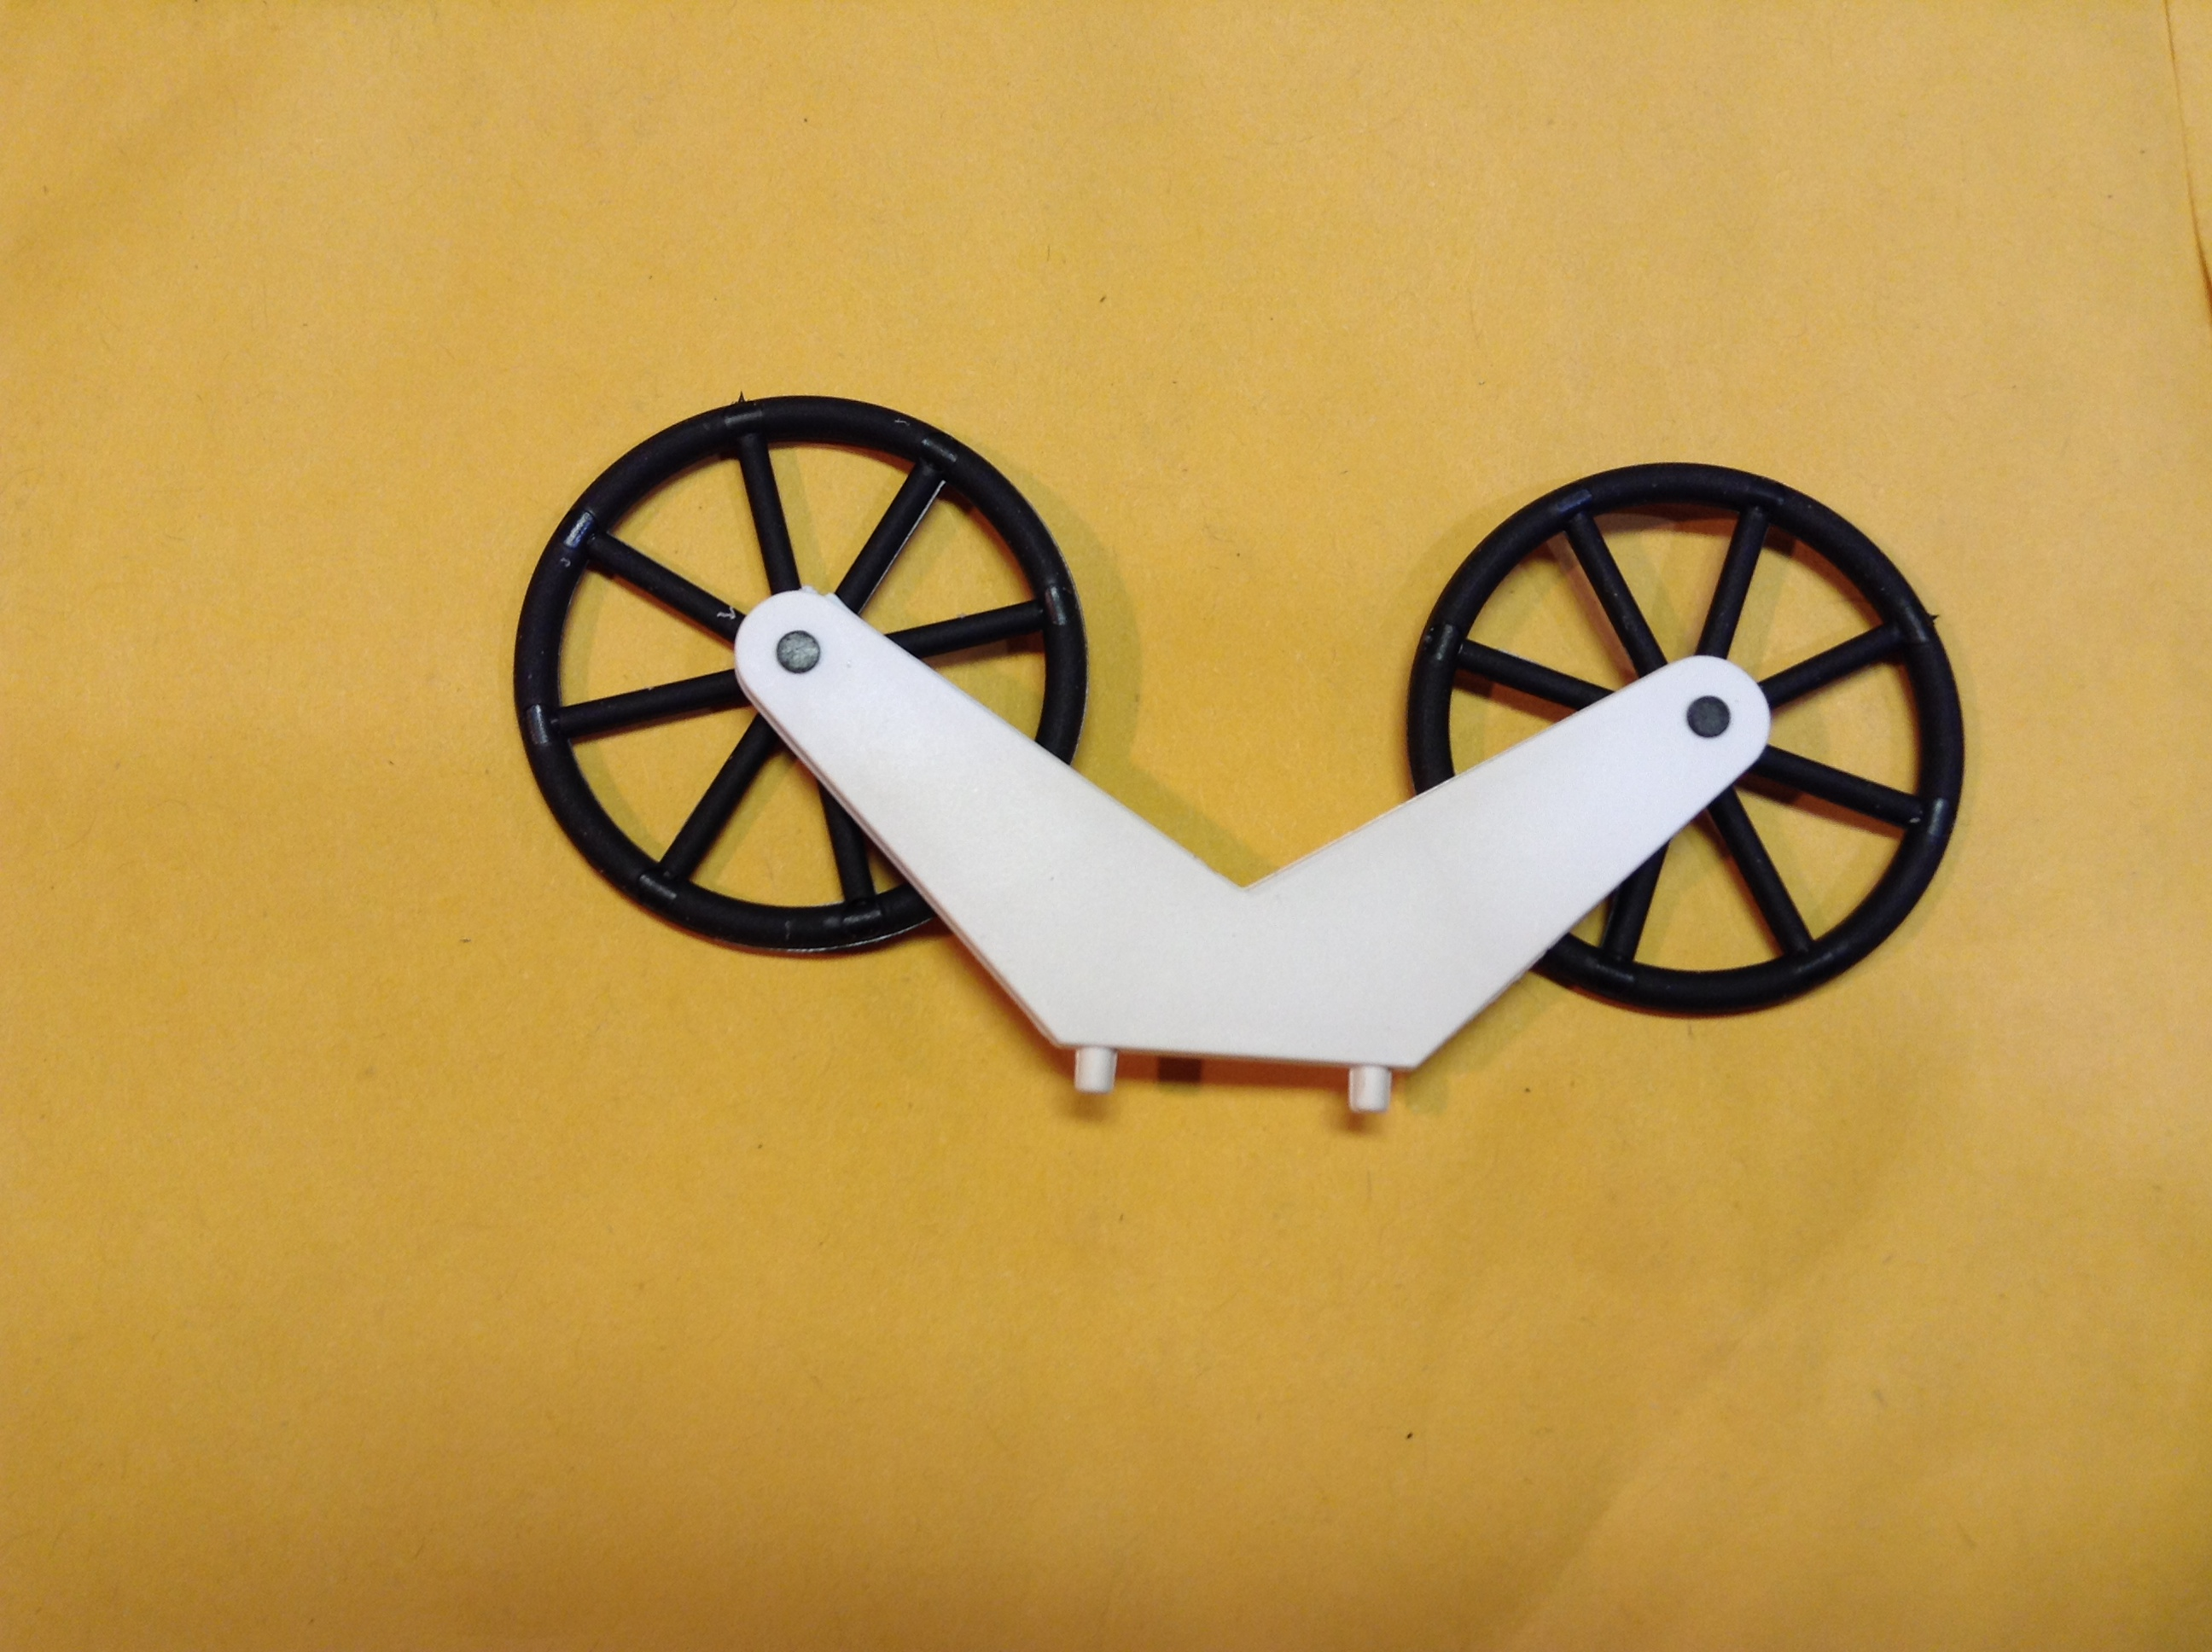 Click image for larger version  Name:vic wheels.JPG Views:58 Size:1.14 MB ID:2001152